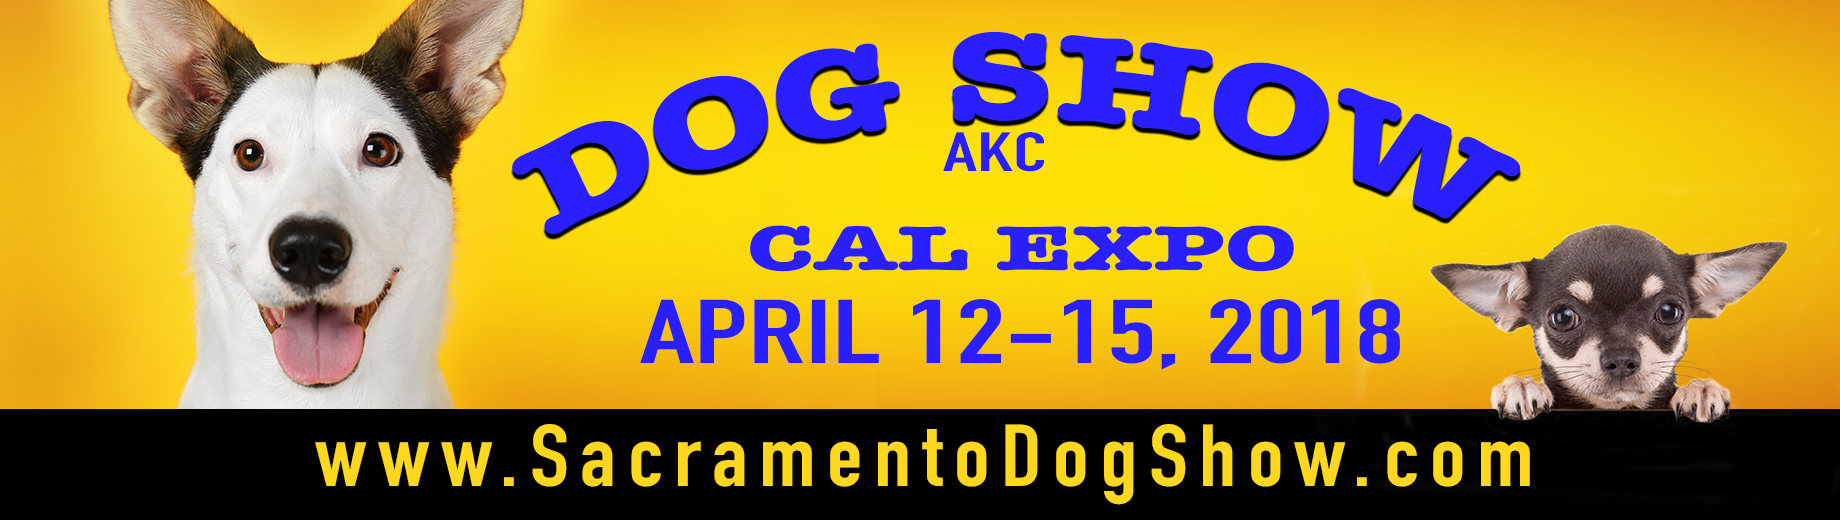 4-2-18 to 4-15-18 2018 Sac dog show 1840x520.jpg